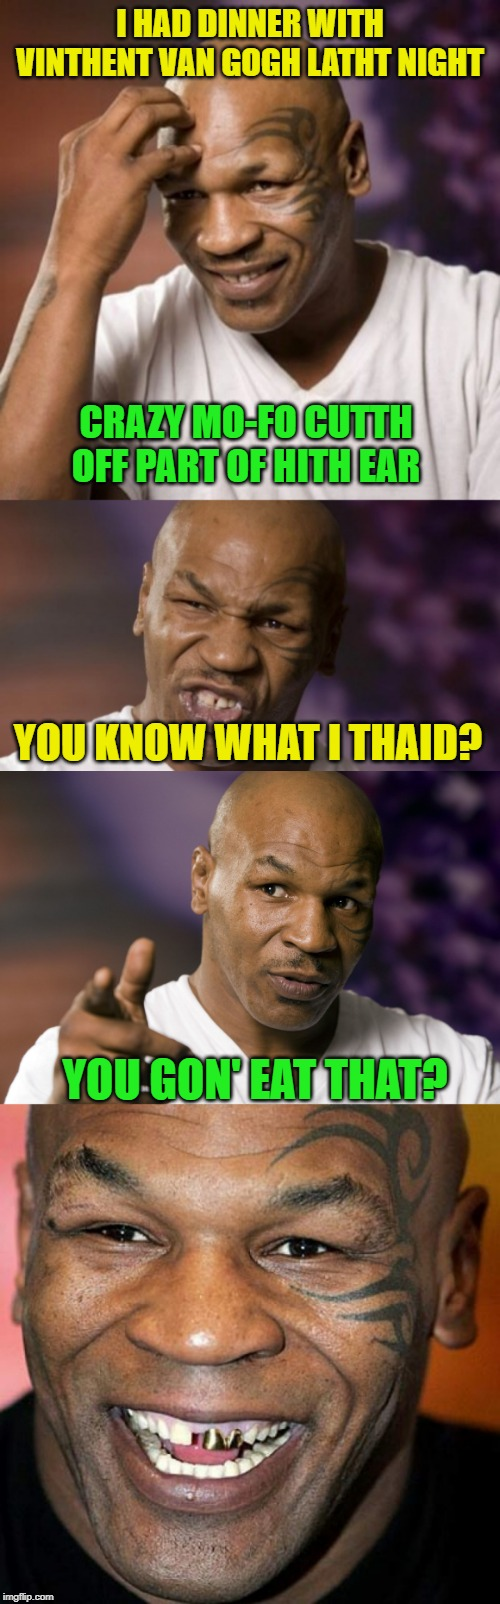 Mike Tyson meets Van Gogh | I HAD DINNER WITH VINTHENT VAN GOGH LATHT NIGHT YOU GON' EAT THAT? CRAZY MO-FO CUTTH OFF PART OF HITH EAR YOU KNOW WHAT I THAID? | image tagged in mike tyson laff,mike tyson,mike tyson nye,van gogh,ears | made w/ Imgflip meme maker